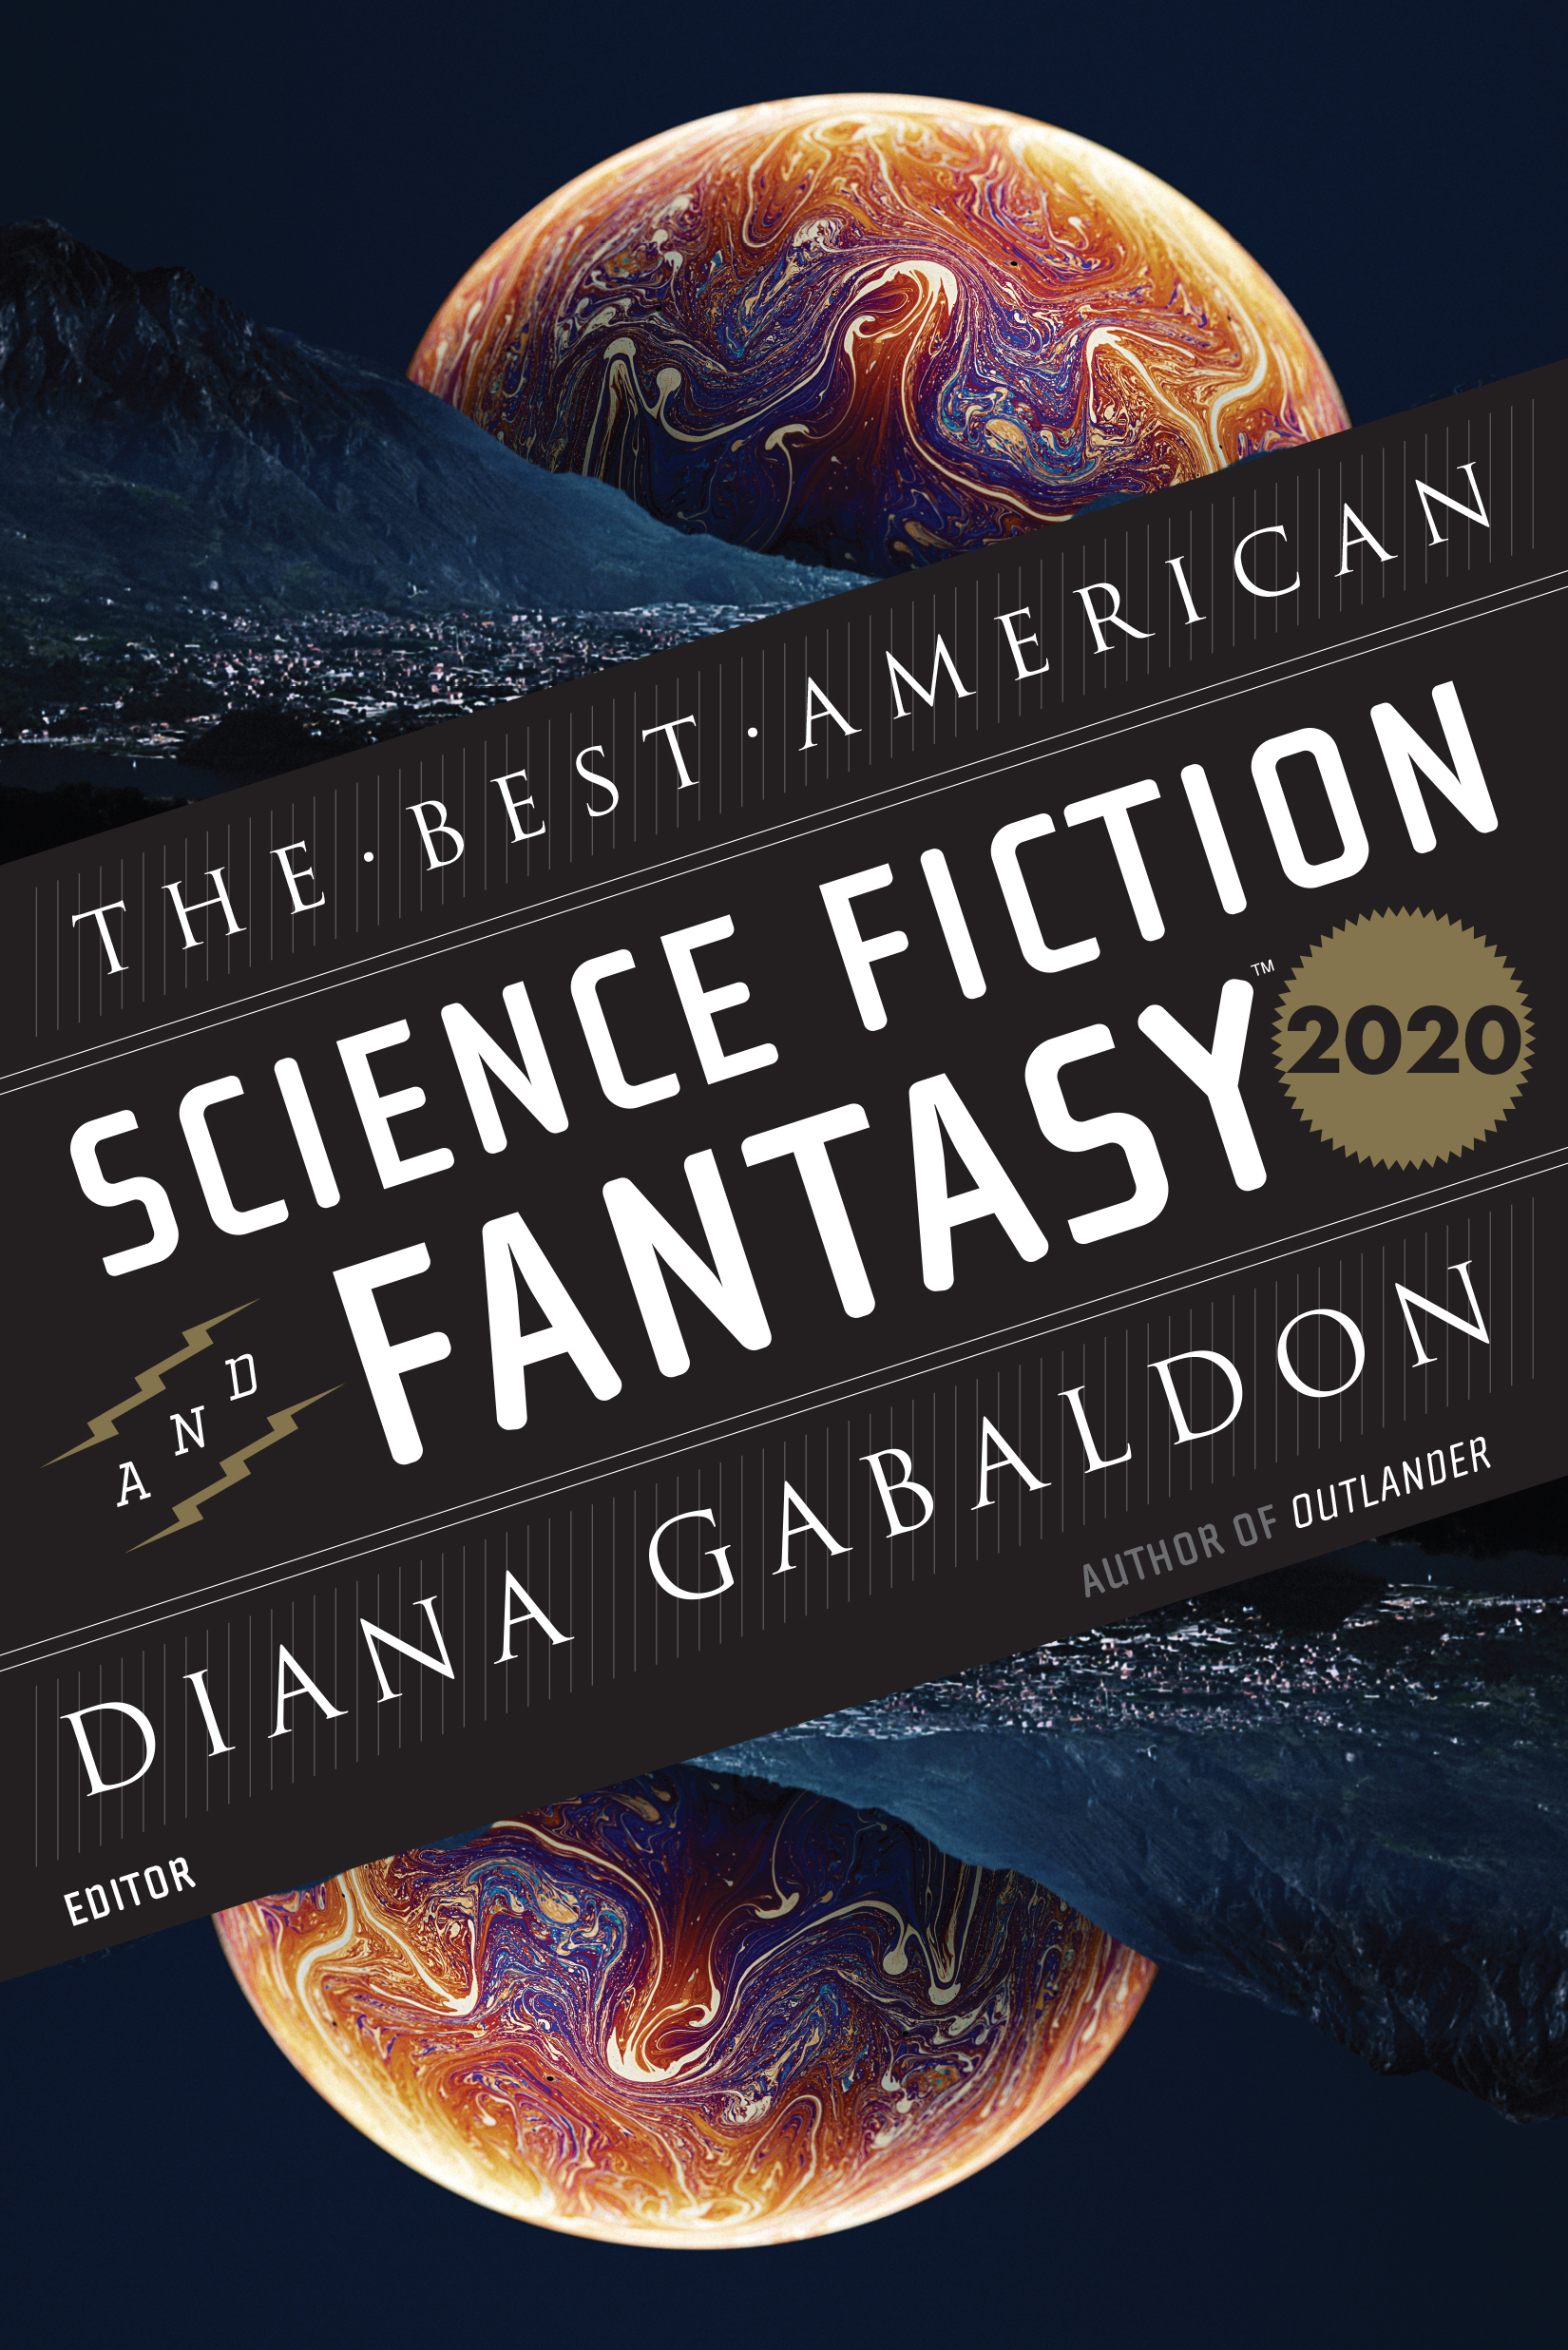 The Best American Science Fiction and Fantasy 2020